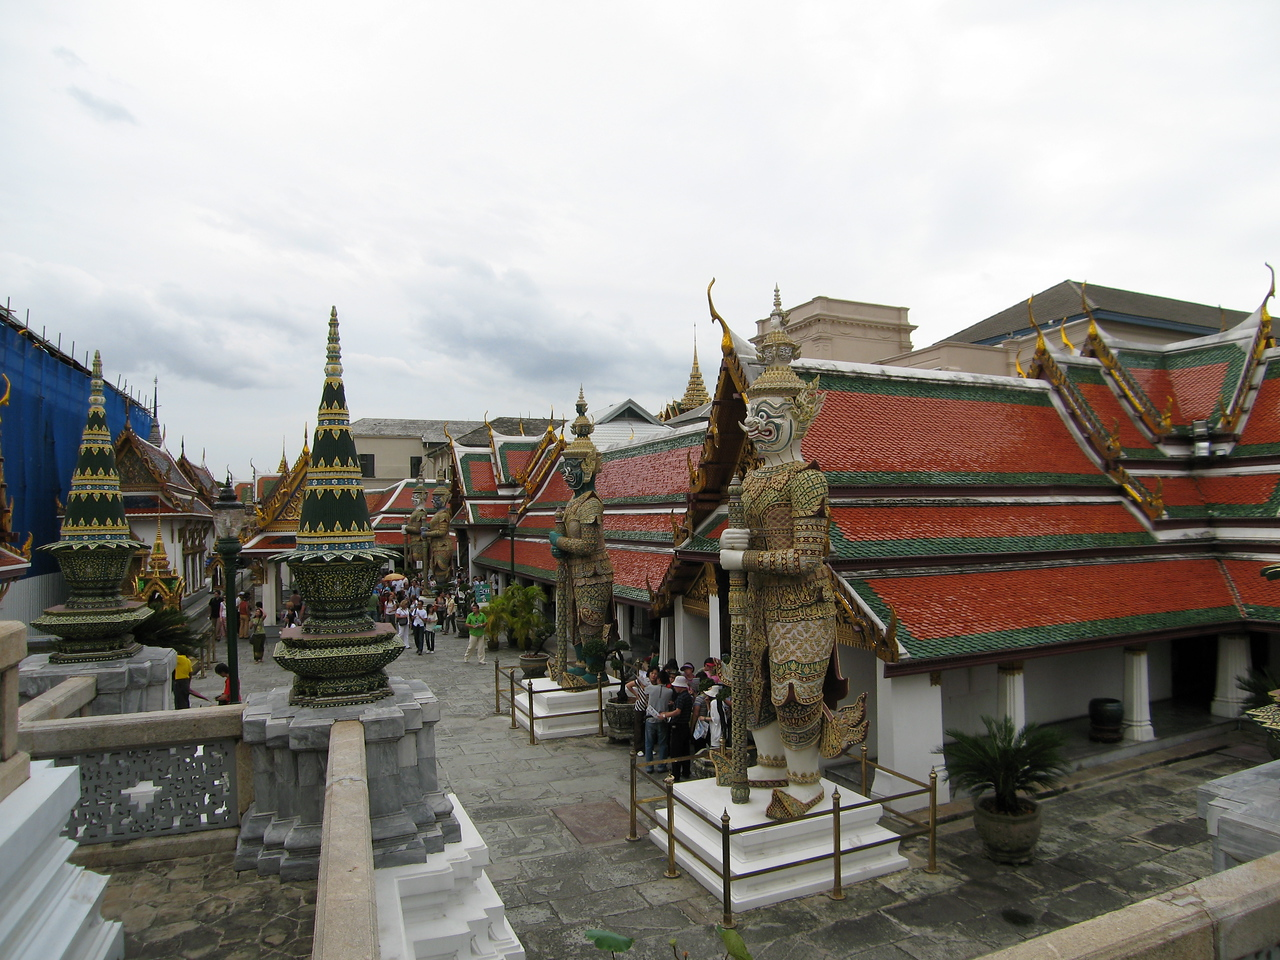 """49. Temple of the Emerald Buddha (Wat Phra Kaew)<br /> <br /> Wat Phra Kaew Gallery<br /> <a href=""""http://rishiray.smugmug.com/gallery/3257161"""">http://rishiray.smugmug.com/gallery/3257161</a><br /> <br /> Hillman Wonders Page<br /> <a href=""""http://www.hillmanwonders.com/temple_emerald_buddha/temple_emerald_buddha.htm#_vtop"""">http://www.hillmanwonders.com/temple_emerald_buddha/temple_emerald_buddha.htm#_vtop</a>"""